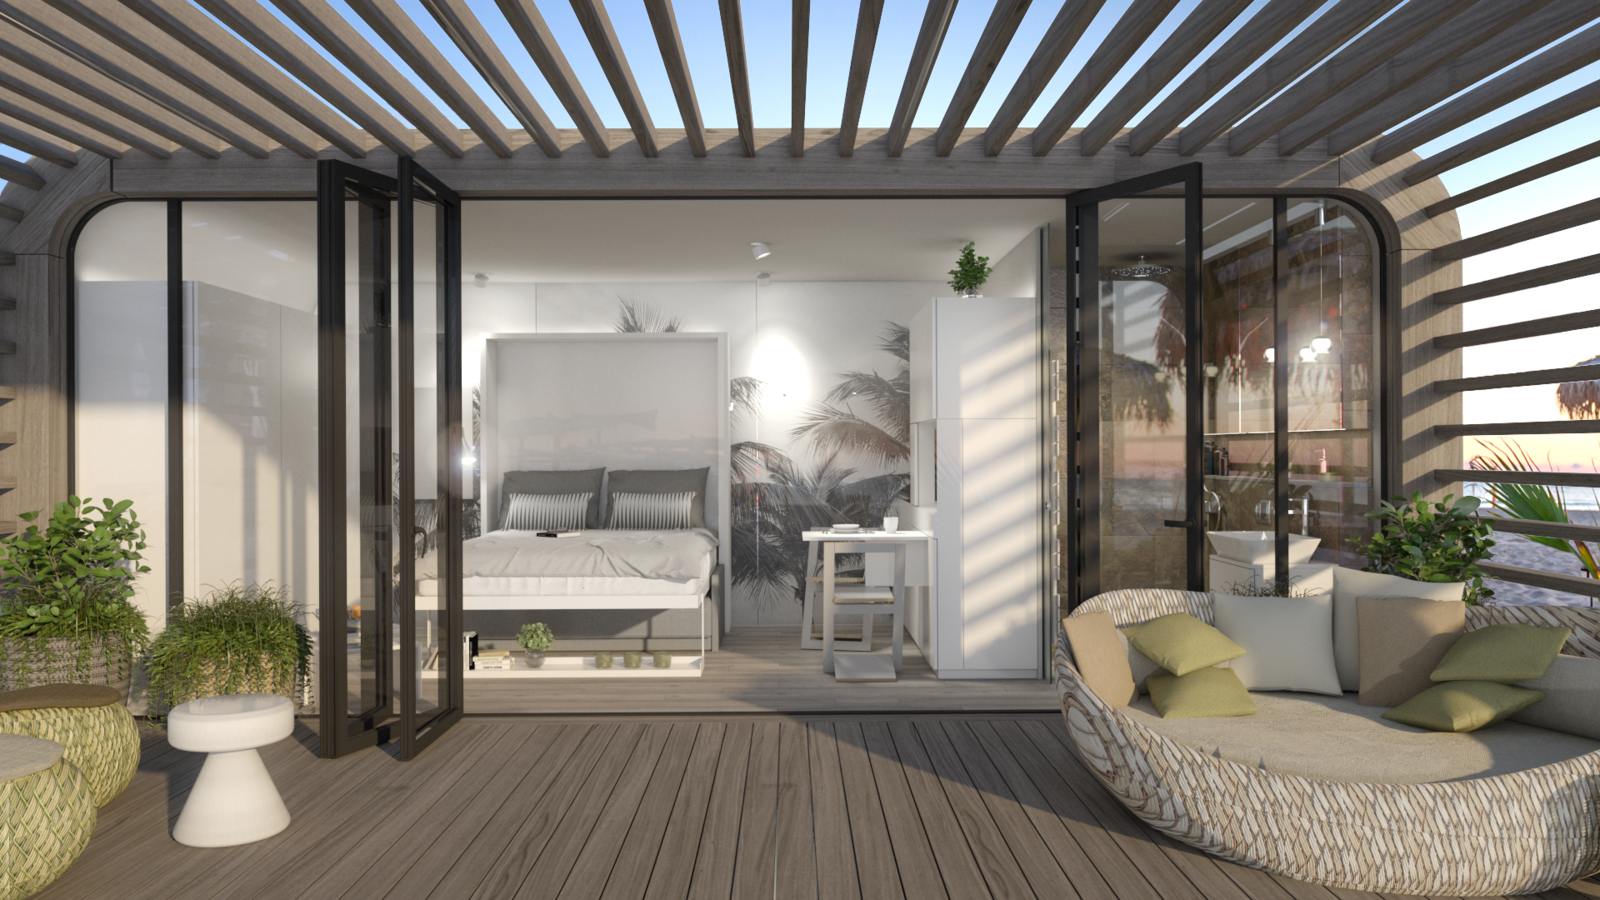 Outdoor, Decking Patio, Porch, Deck, and Planters Patio, Porch, Deck Coodo's come with an optional outdoor pergola featuring a patio made of recyclable deck planks.  Photo 8 of 12 in Meet the Prefab Unit That's Smart, Mobile, and Sustainable